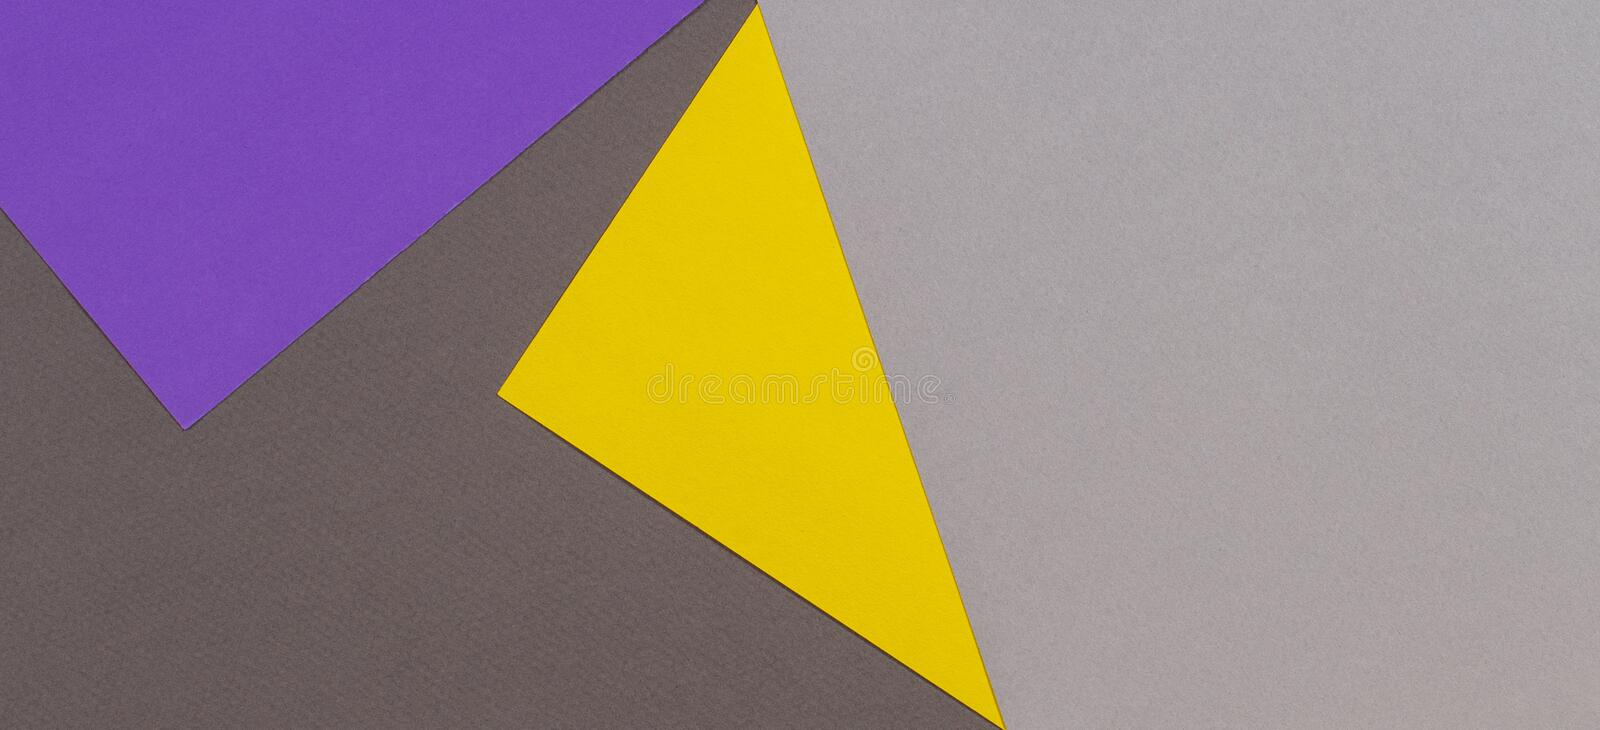 Abstract geometric paper texture cardboard background. Top view of purple violet yellow gray trendy colors tones royalty free stock images